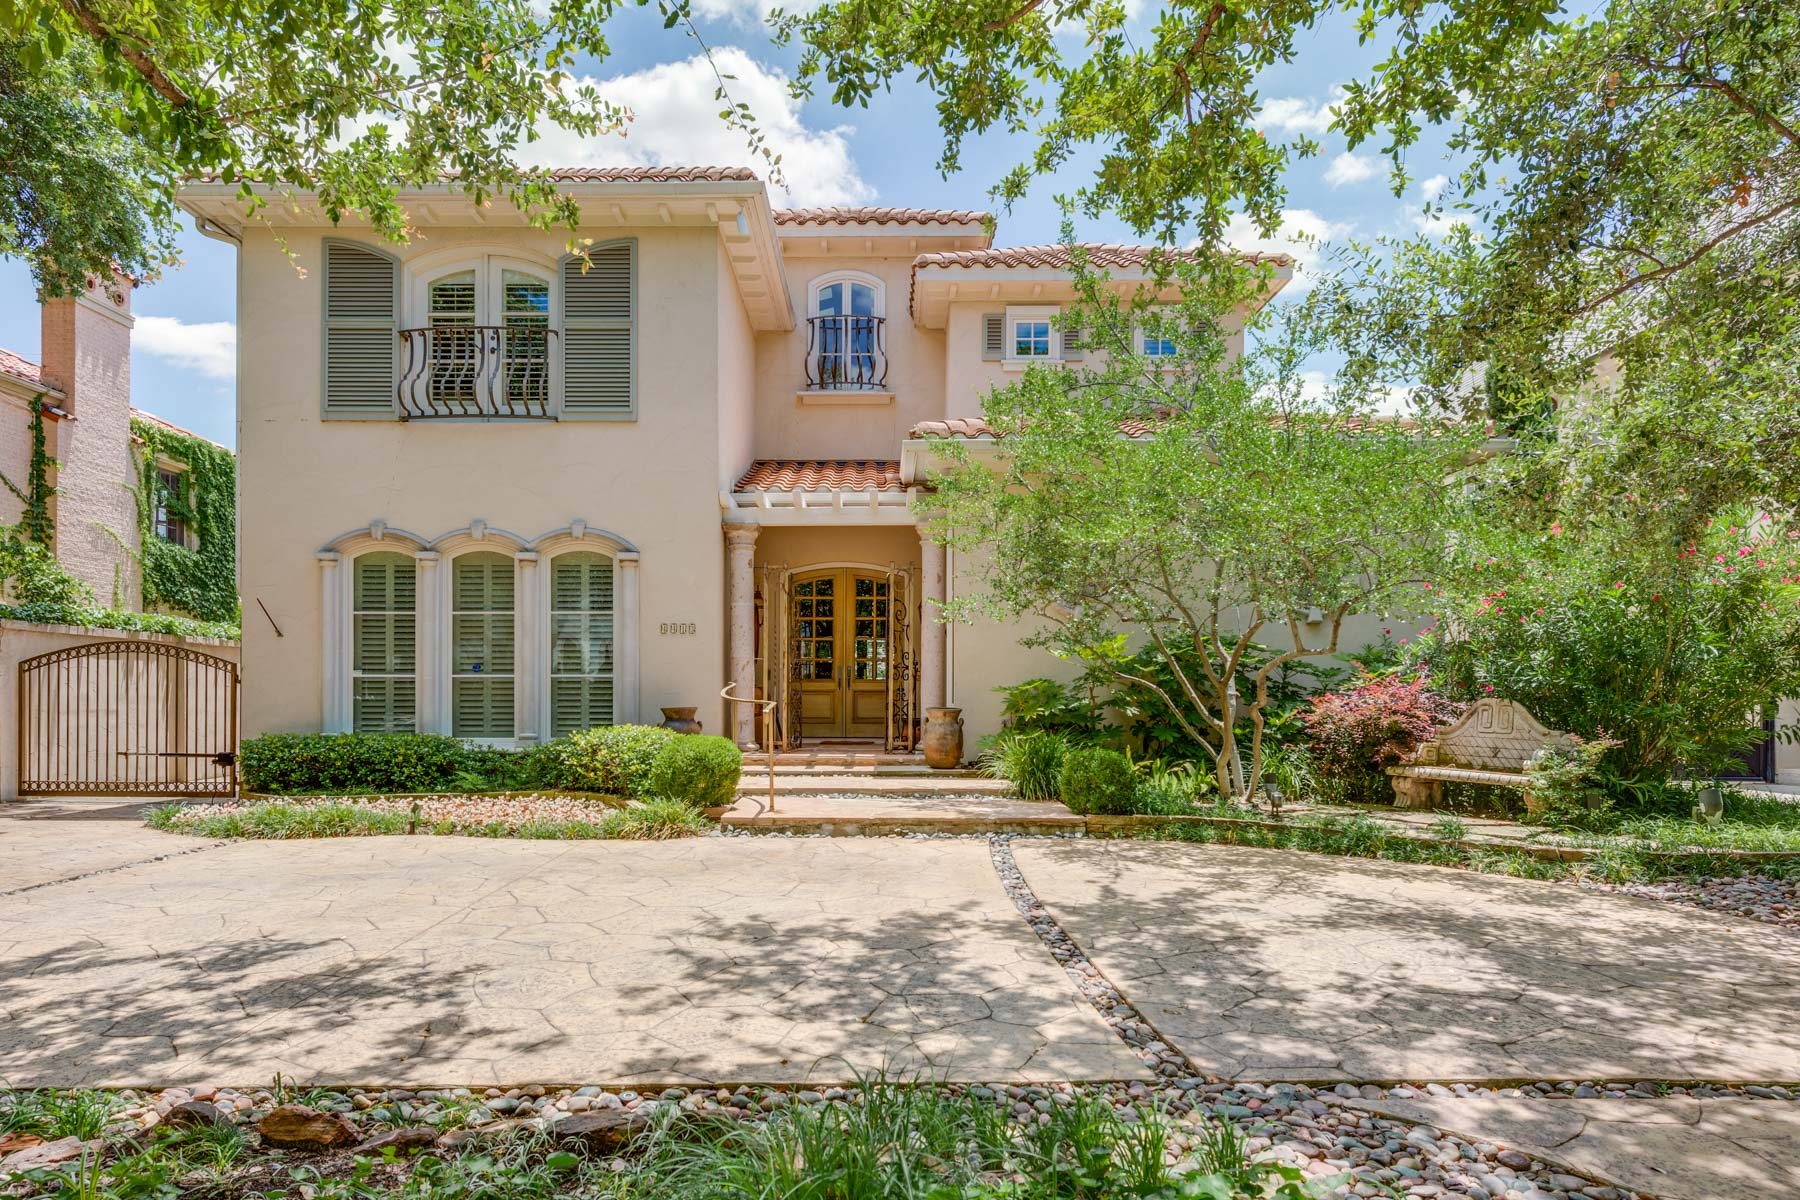 Moradia para Venda às Sophisticated Home Built in 1999 Located in Highland Park 4413 Beverly Drive Dallas, Texas, 75205 Estados Unidos